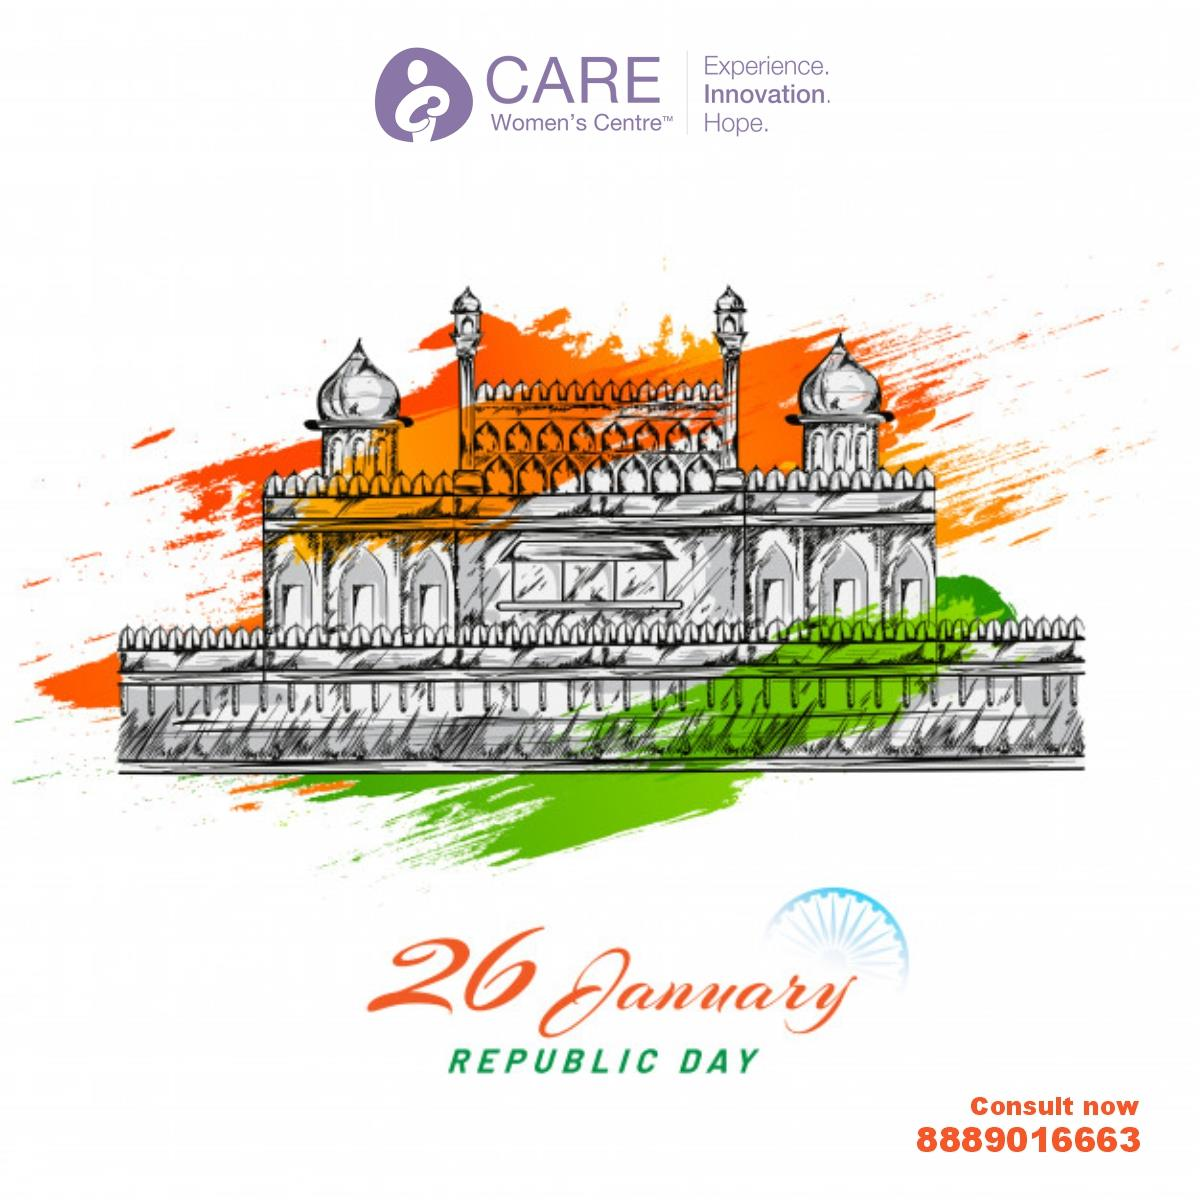 Better things are coming your way! Be in a welcoming energy. Be ready to receive. Happy Republic Day, 2020!  #republicday #india #photography #indian #patriots #happyrepublicday #republicdayindia #love #national #photos #republicdayparade #bhfyp https://t.co/bQ2bAbcgd1